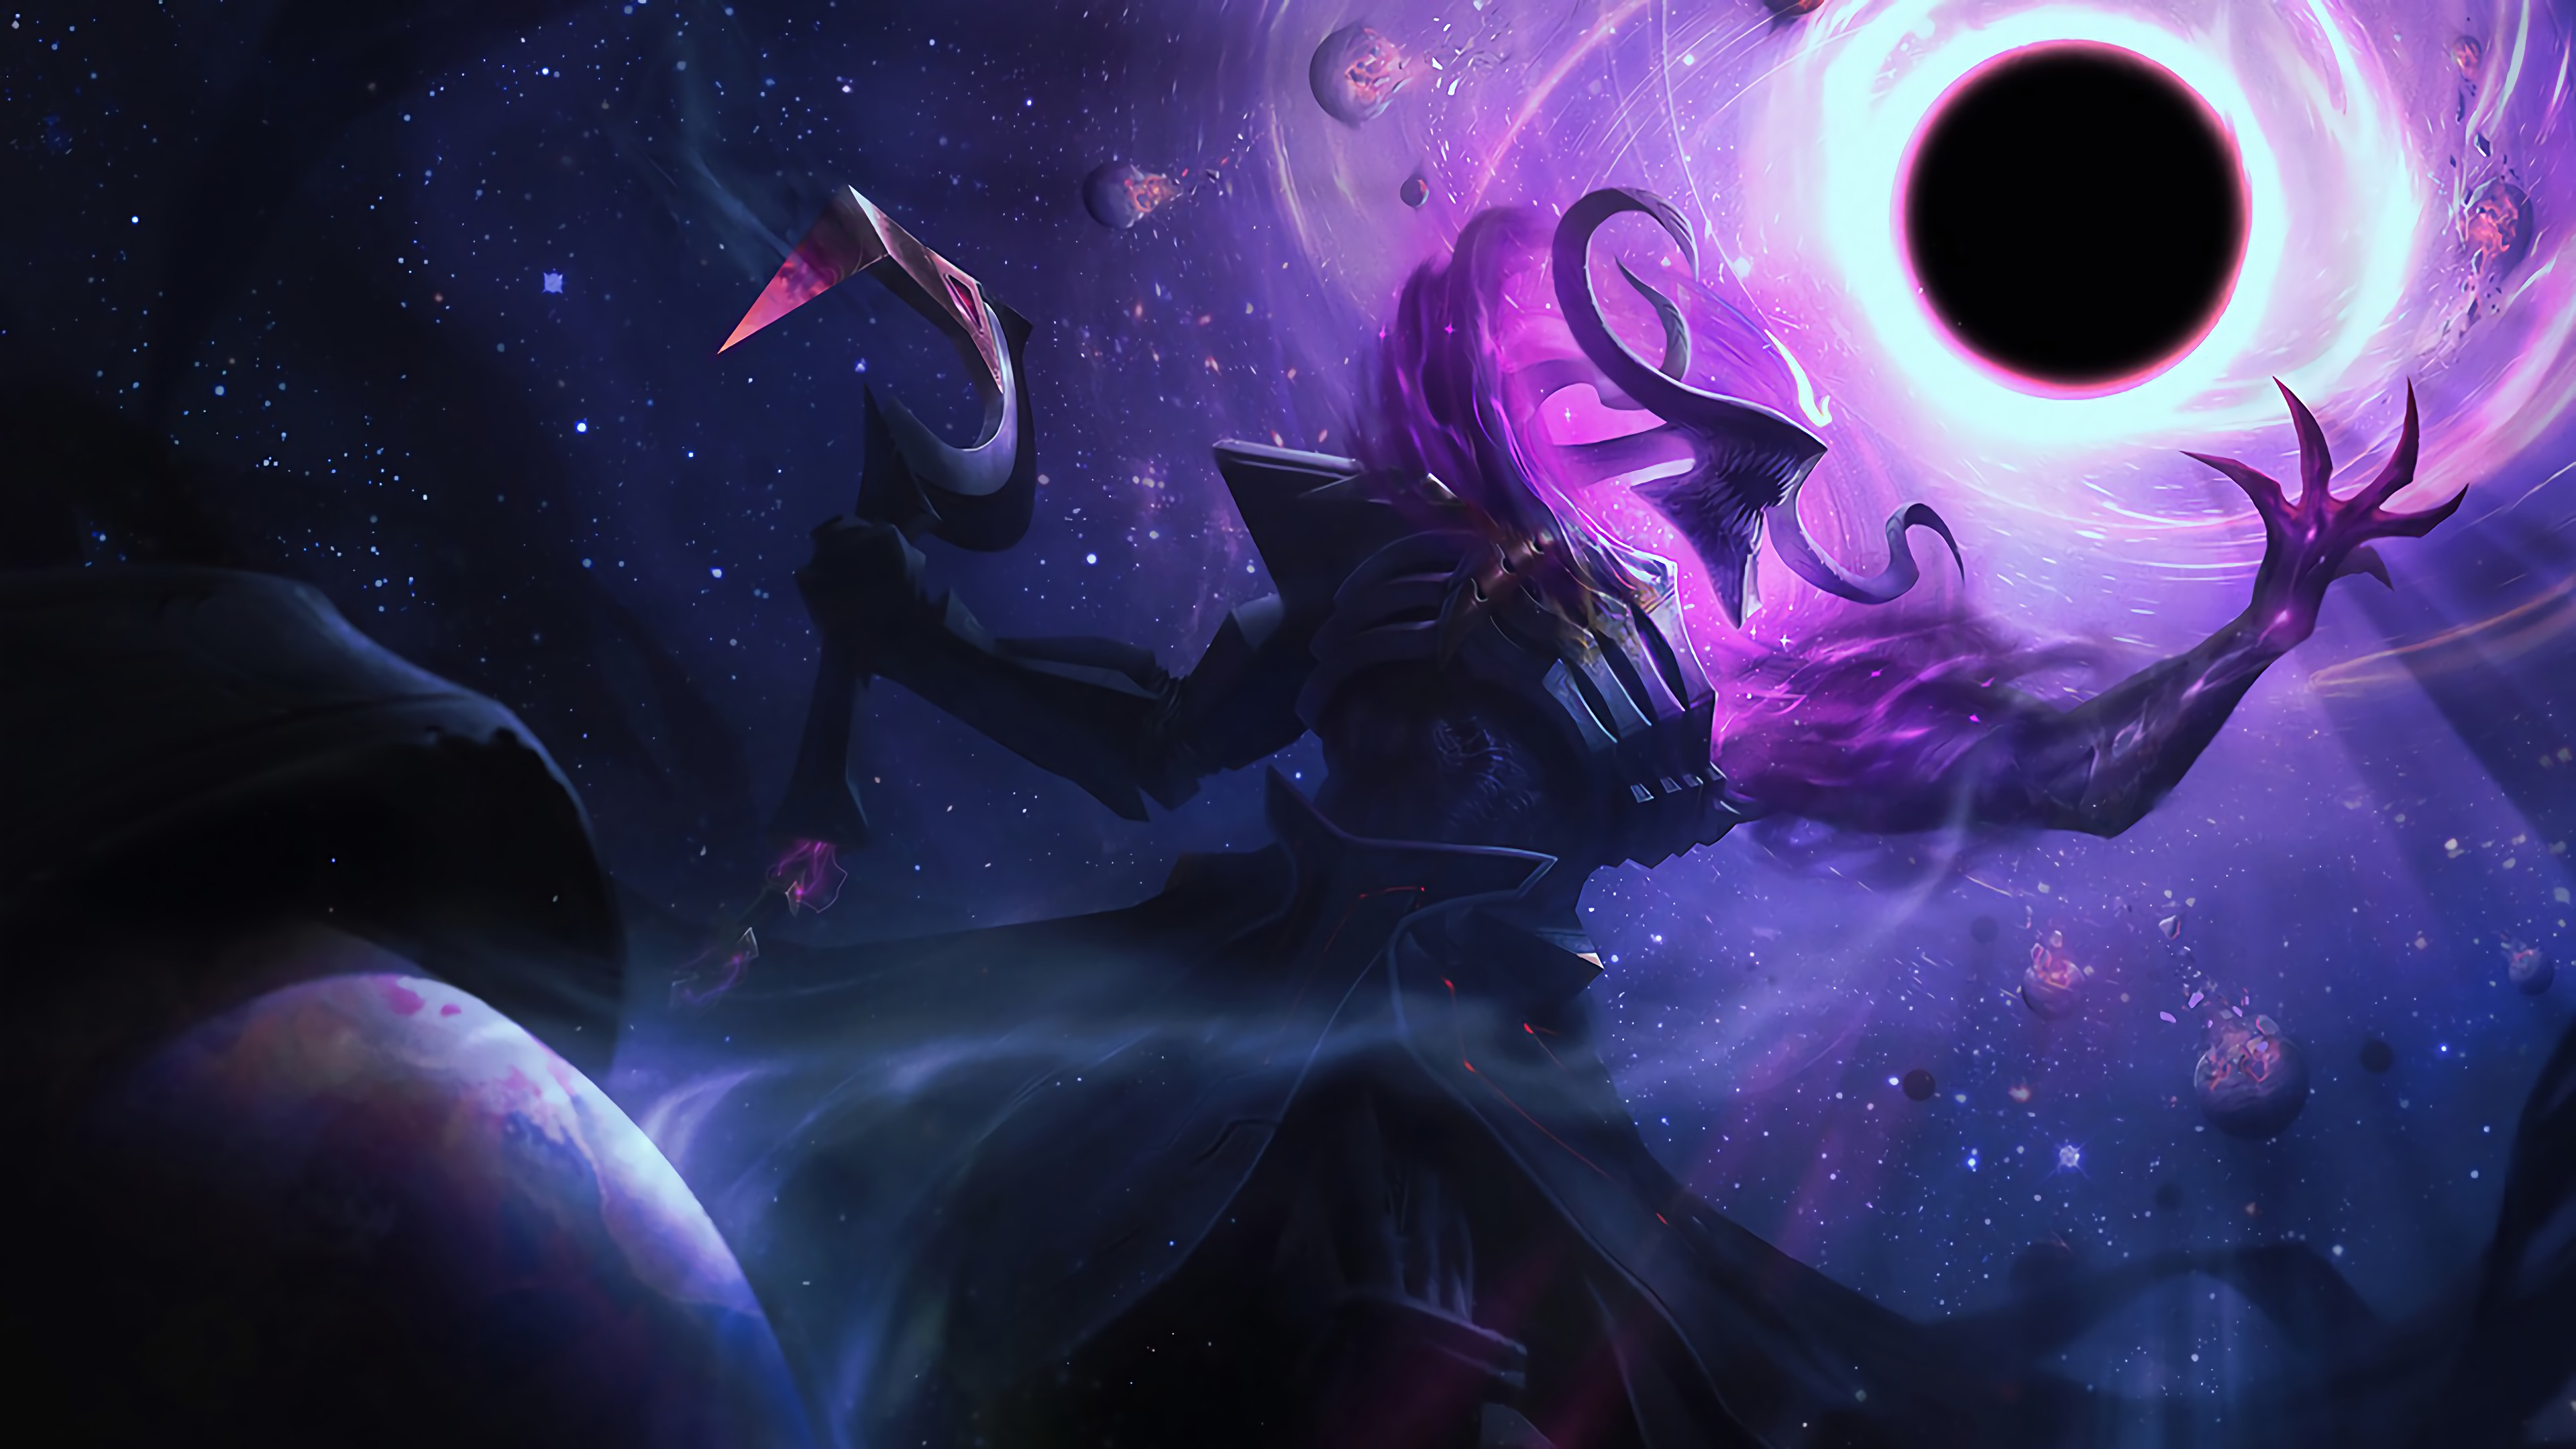 Dark Star Thresh League of Legends